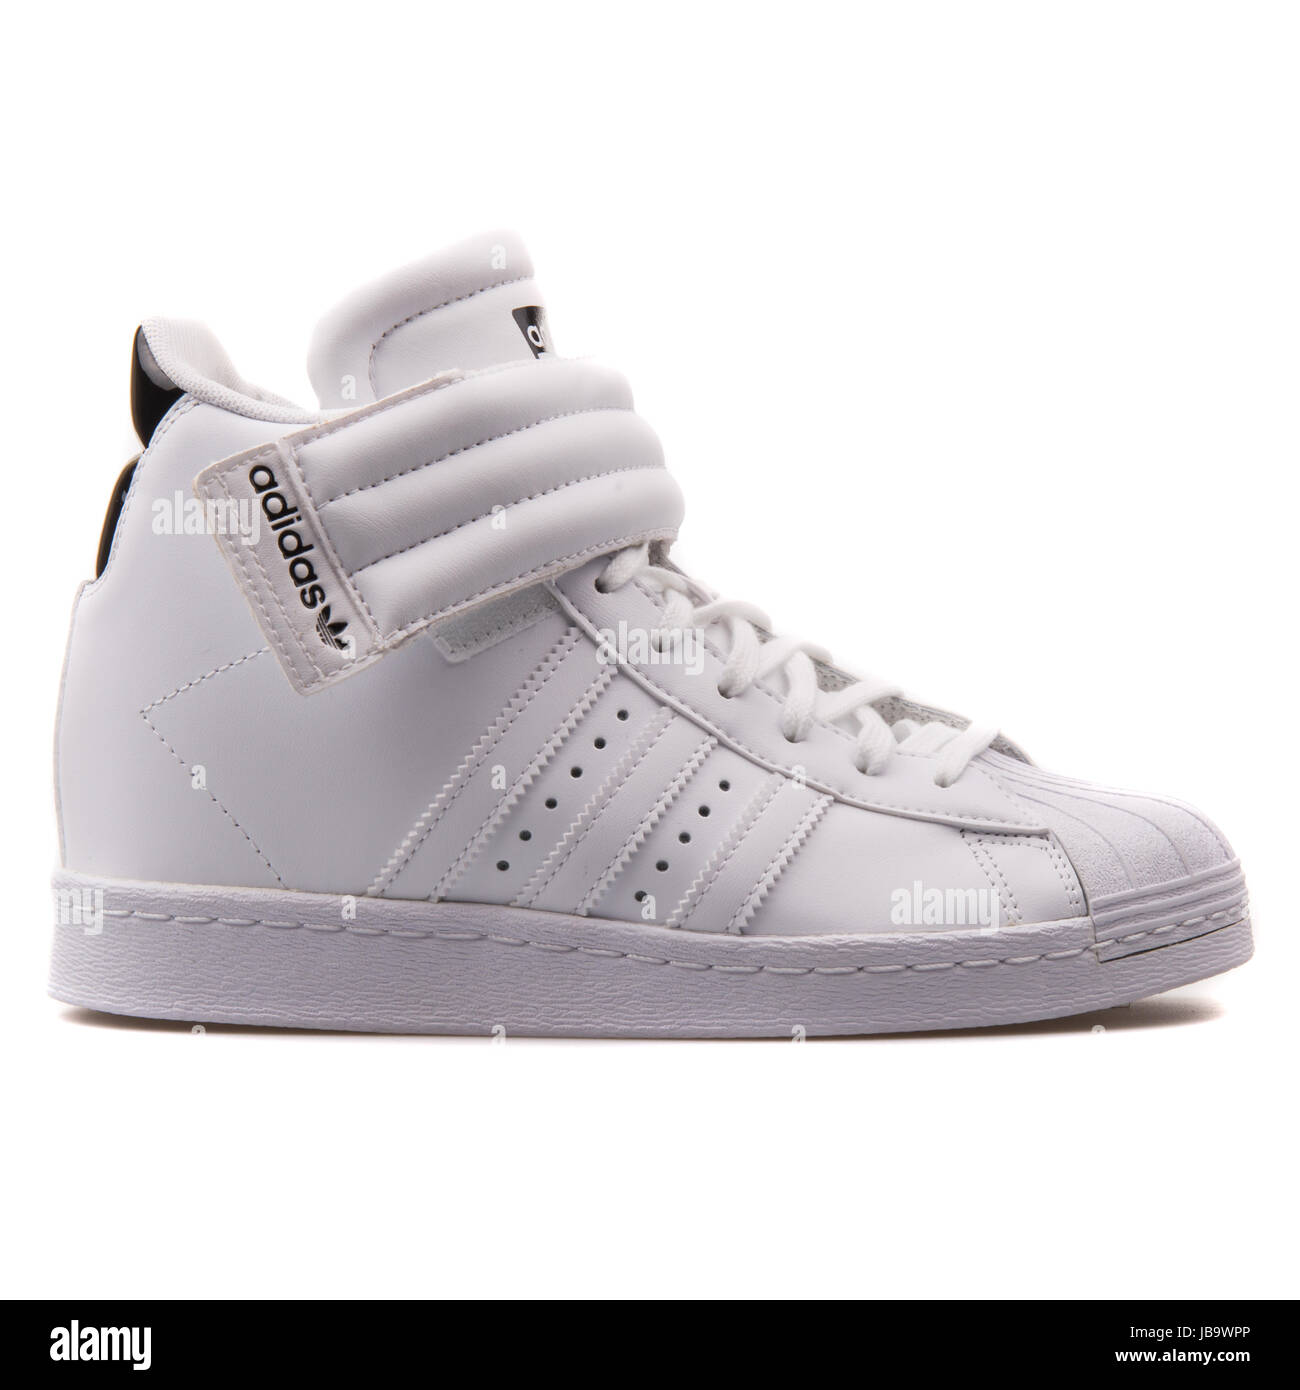 12d1b5b36992 Adidas Superstar UP Strap W White Women s Shoes - S81351 Stock Photo ...